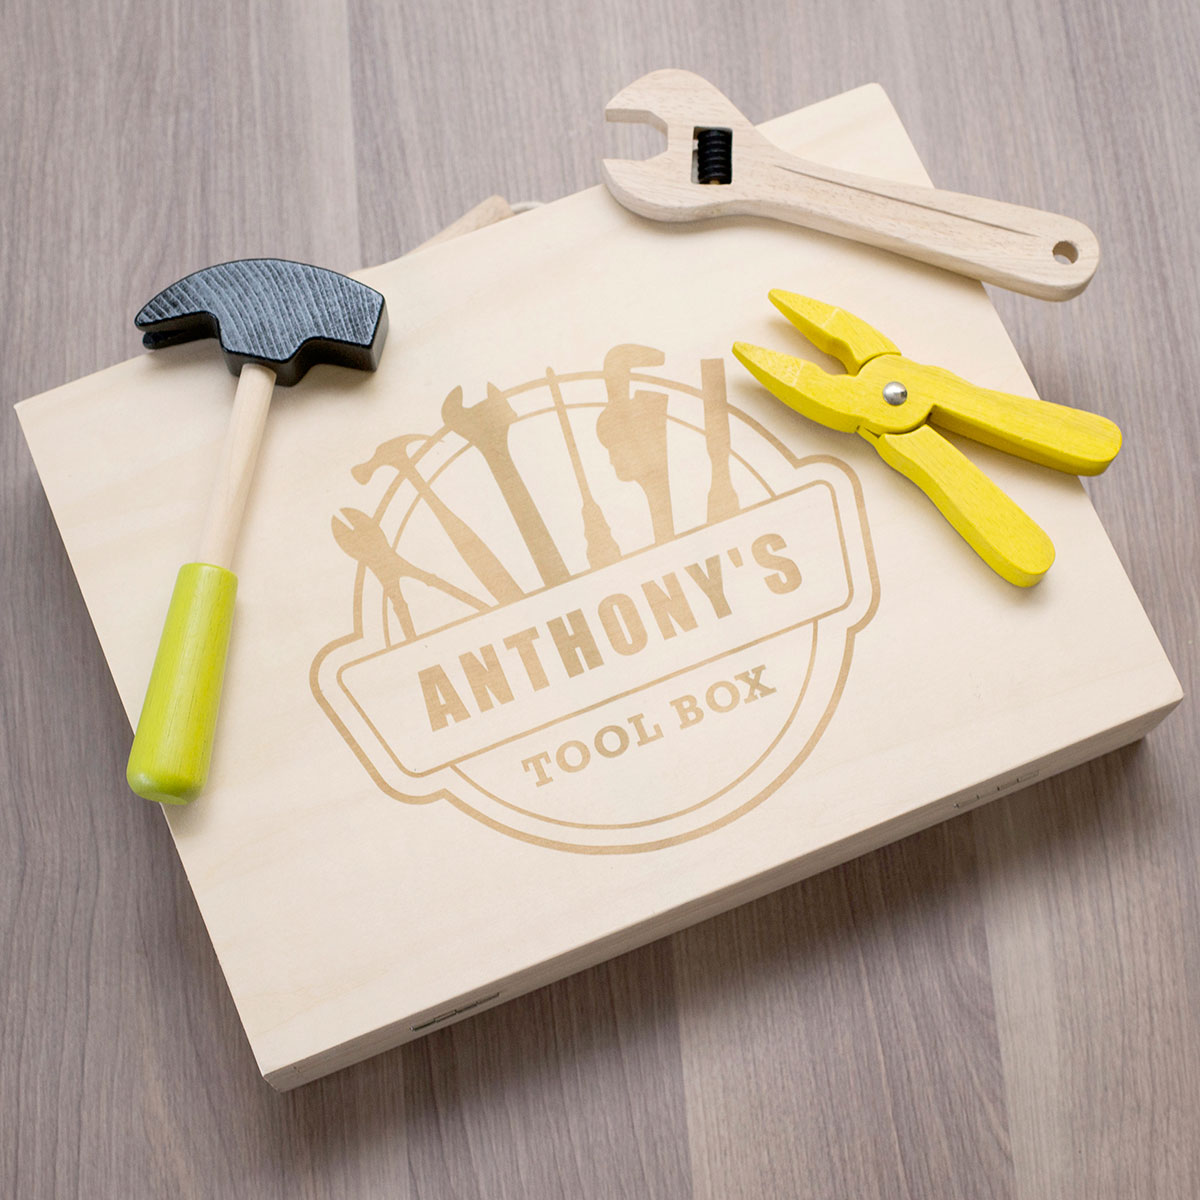 Personalised Childrens Wooden Tool Set & Case